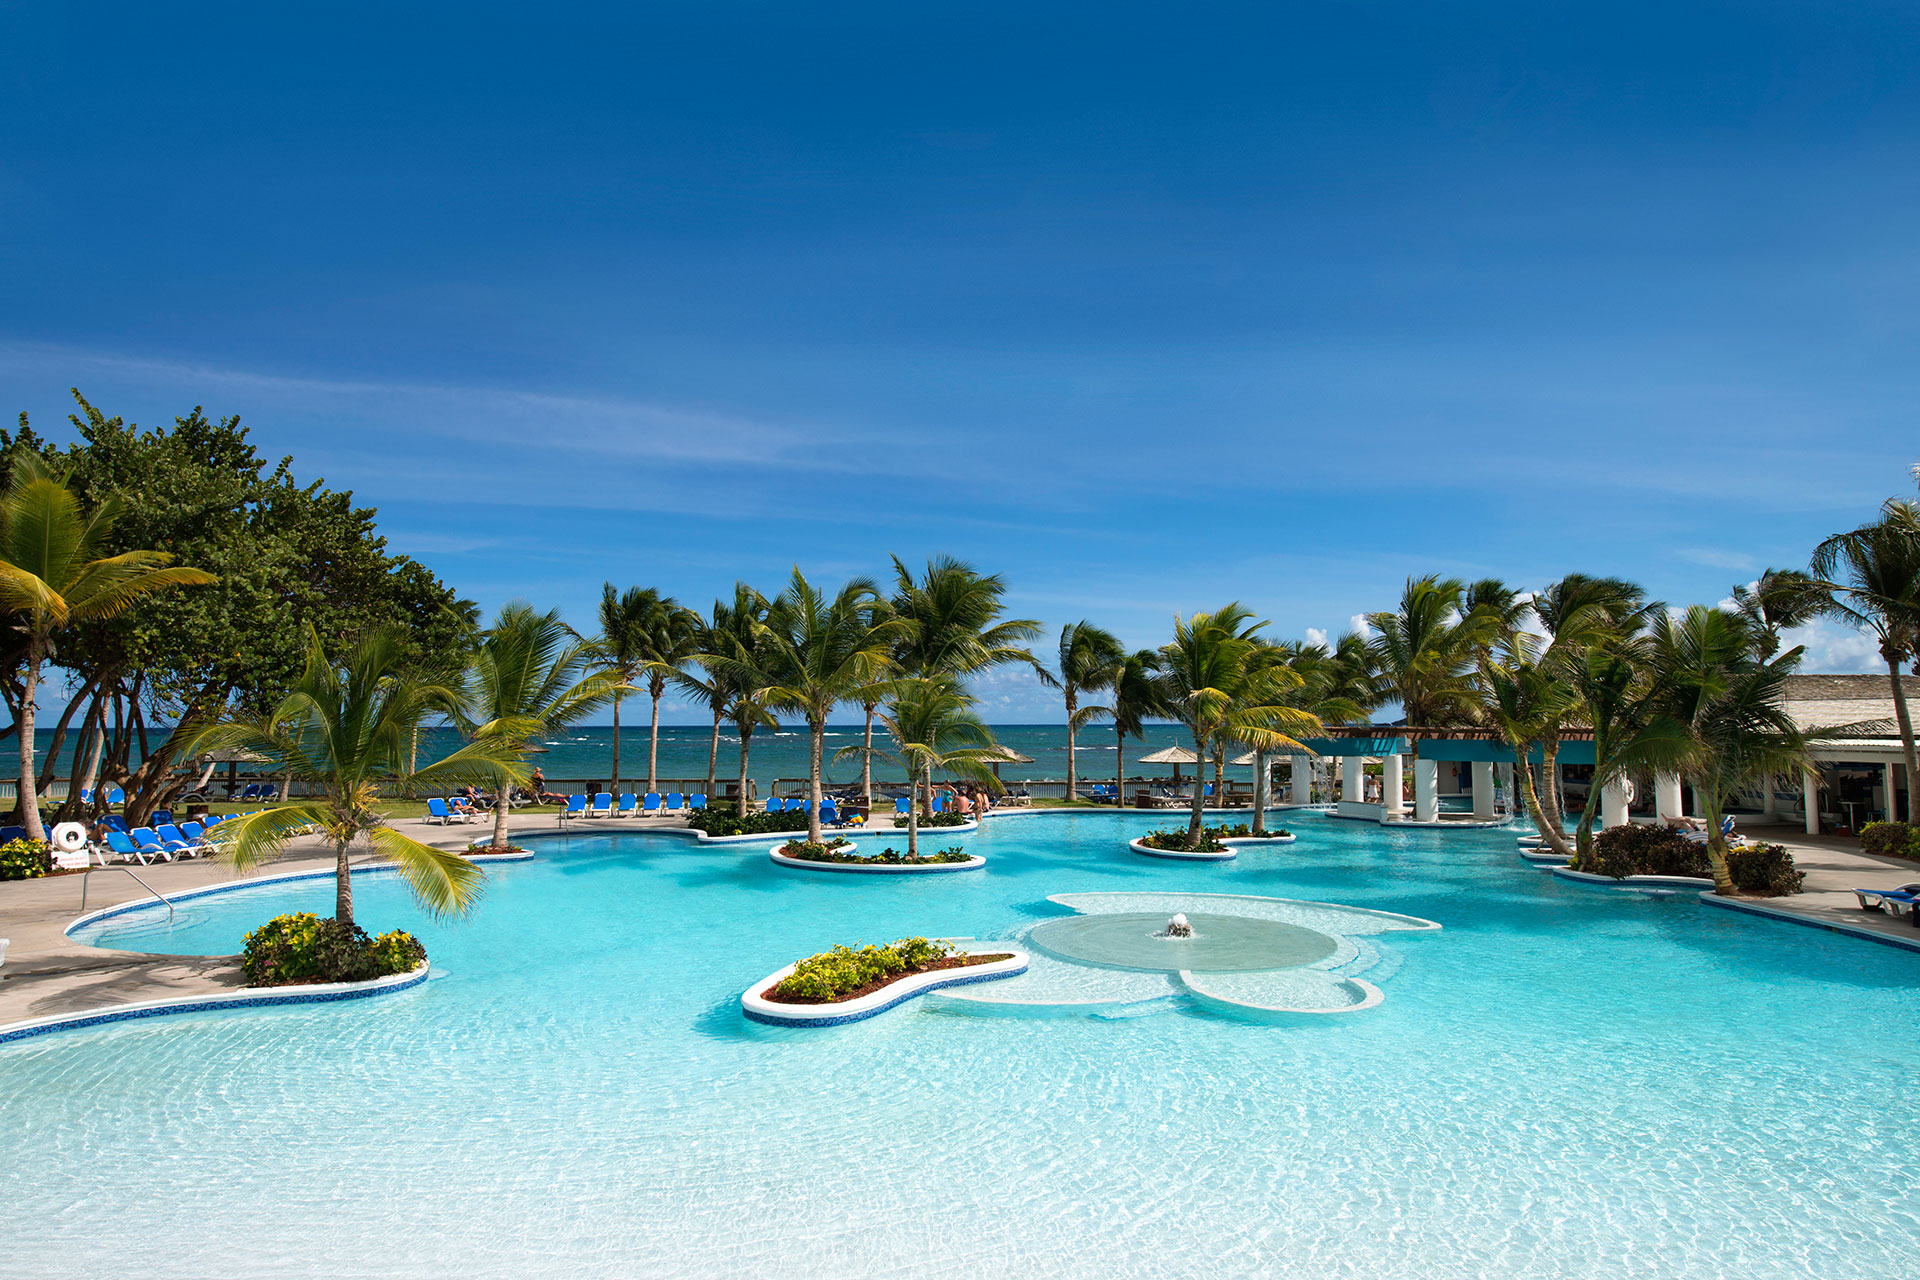 Pools at Coconut Bay Beach Resort & Spa; Courtesy of Coconut Bay Beach Resort & Spa